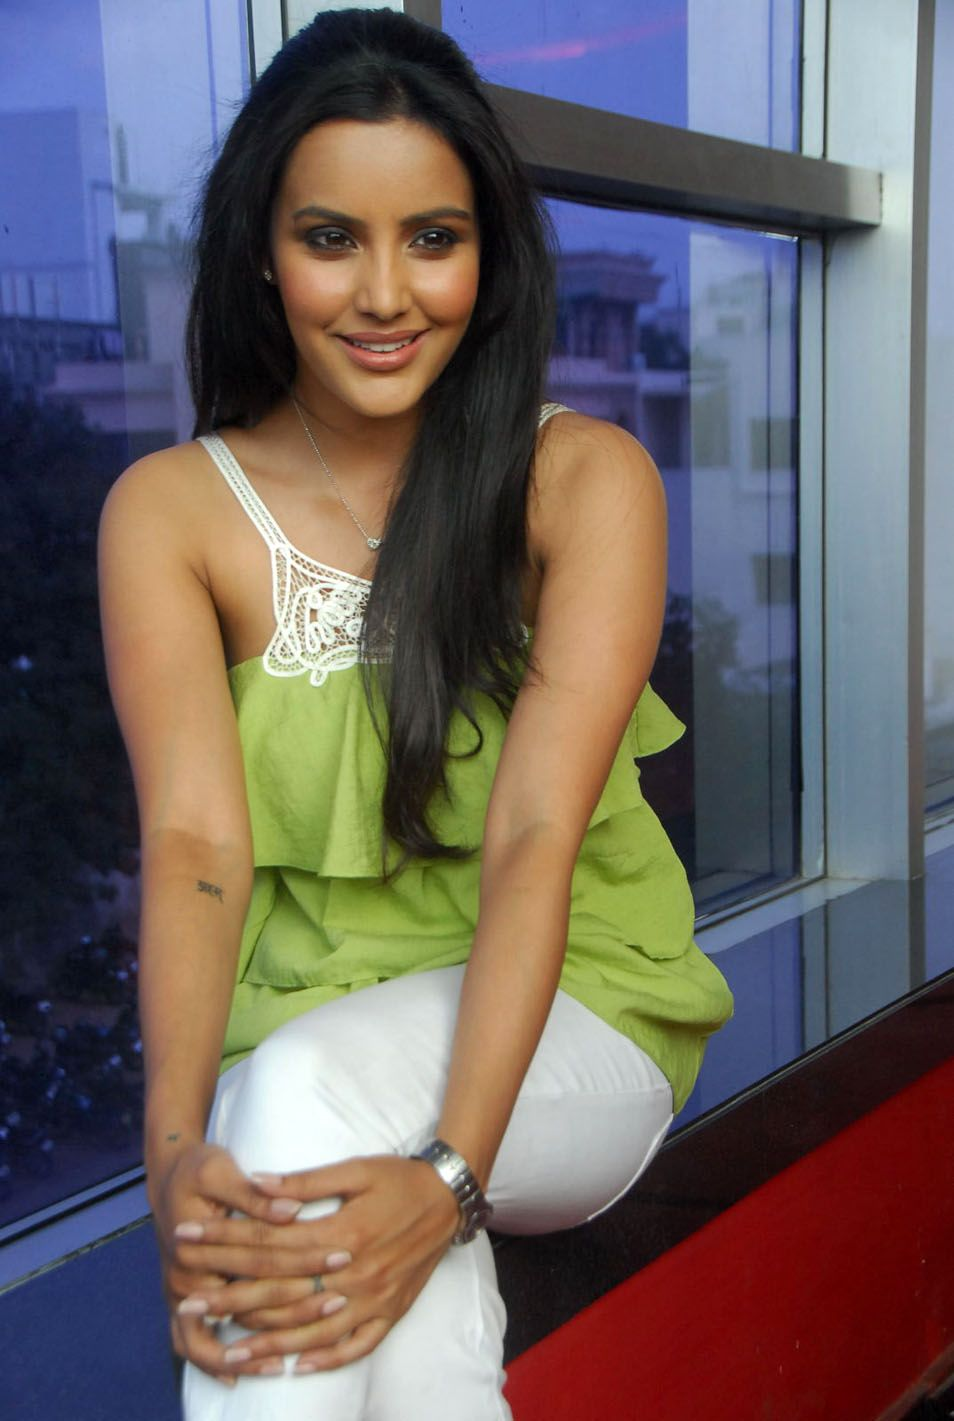 priya anand latest stills 1 - Priya Anand Latest Photoshoot in Green Top white Pants